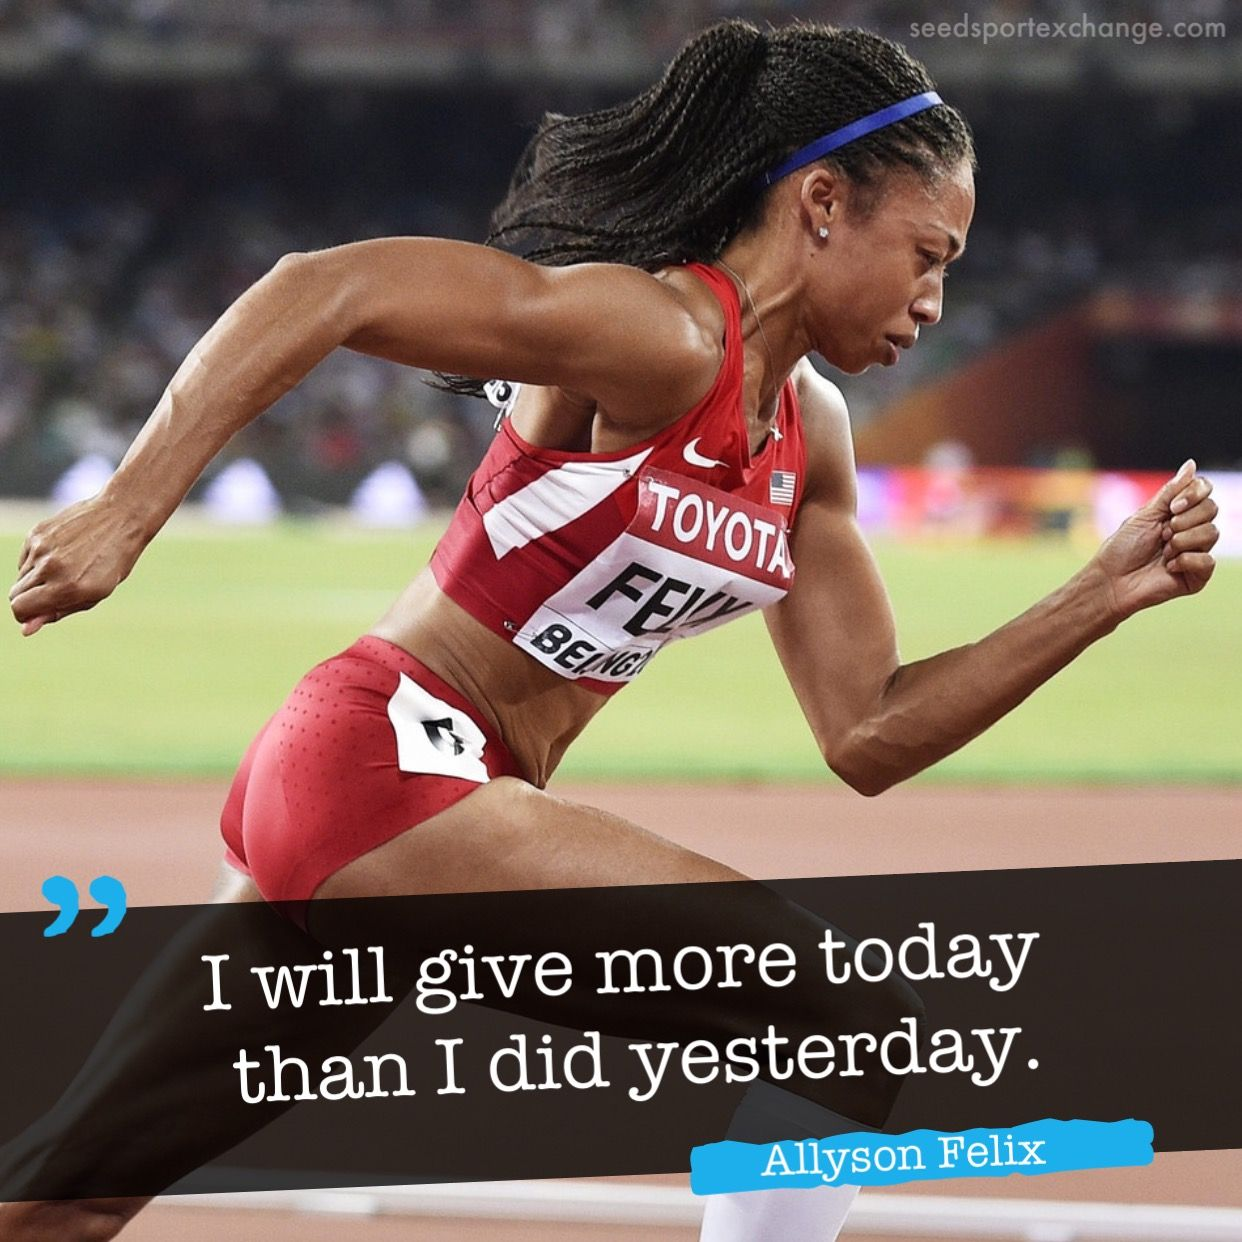 Pin by Seed Sport Exchange on Athletes Quotes Athlete